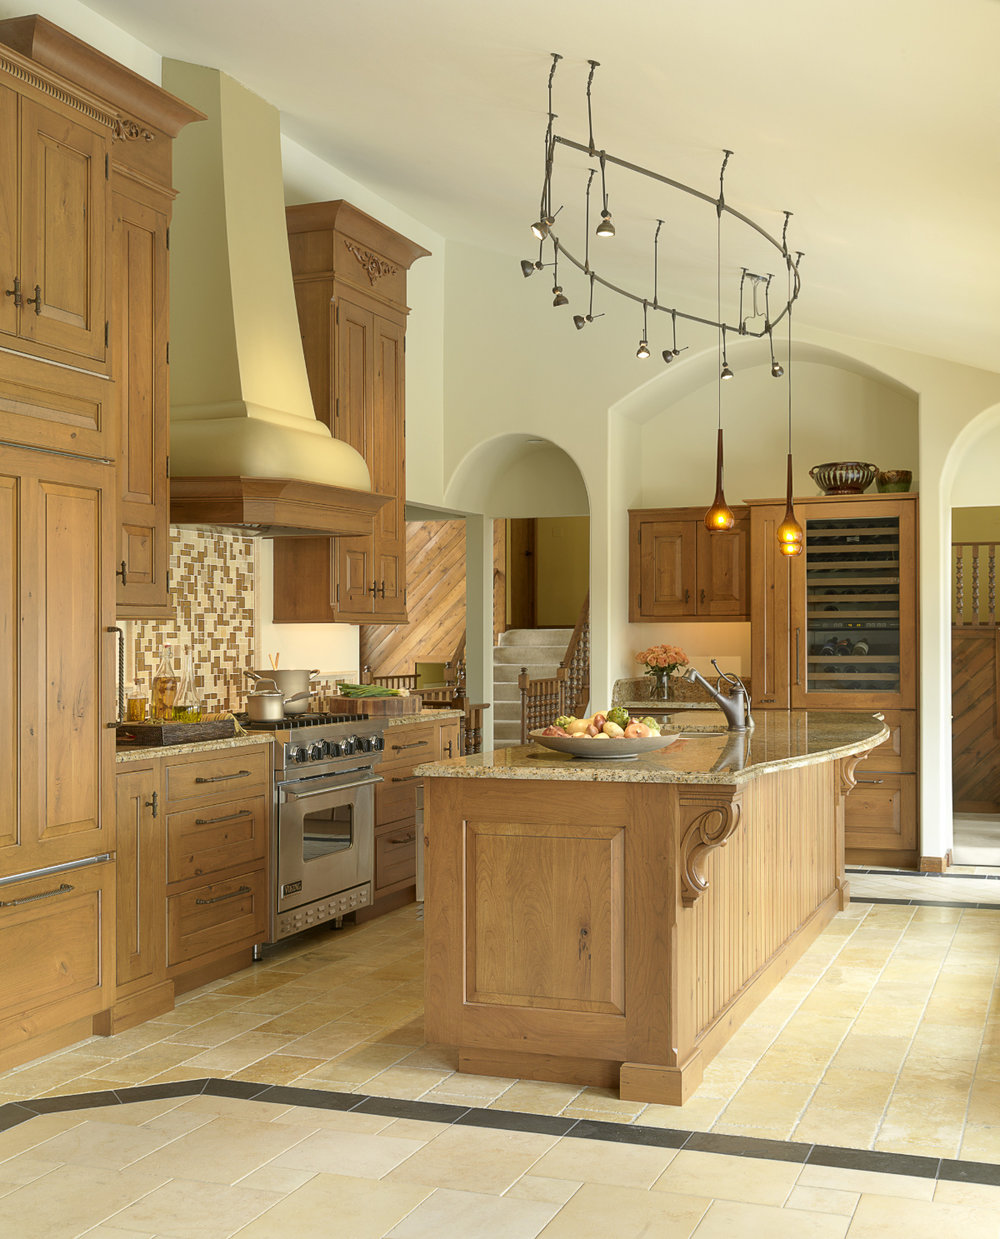 Winkler Kitchen Overall-small.jpg